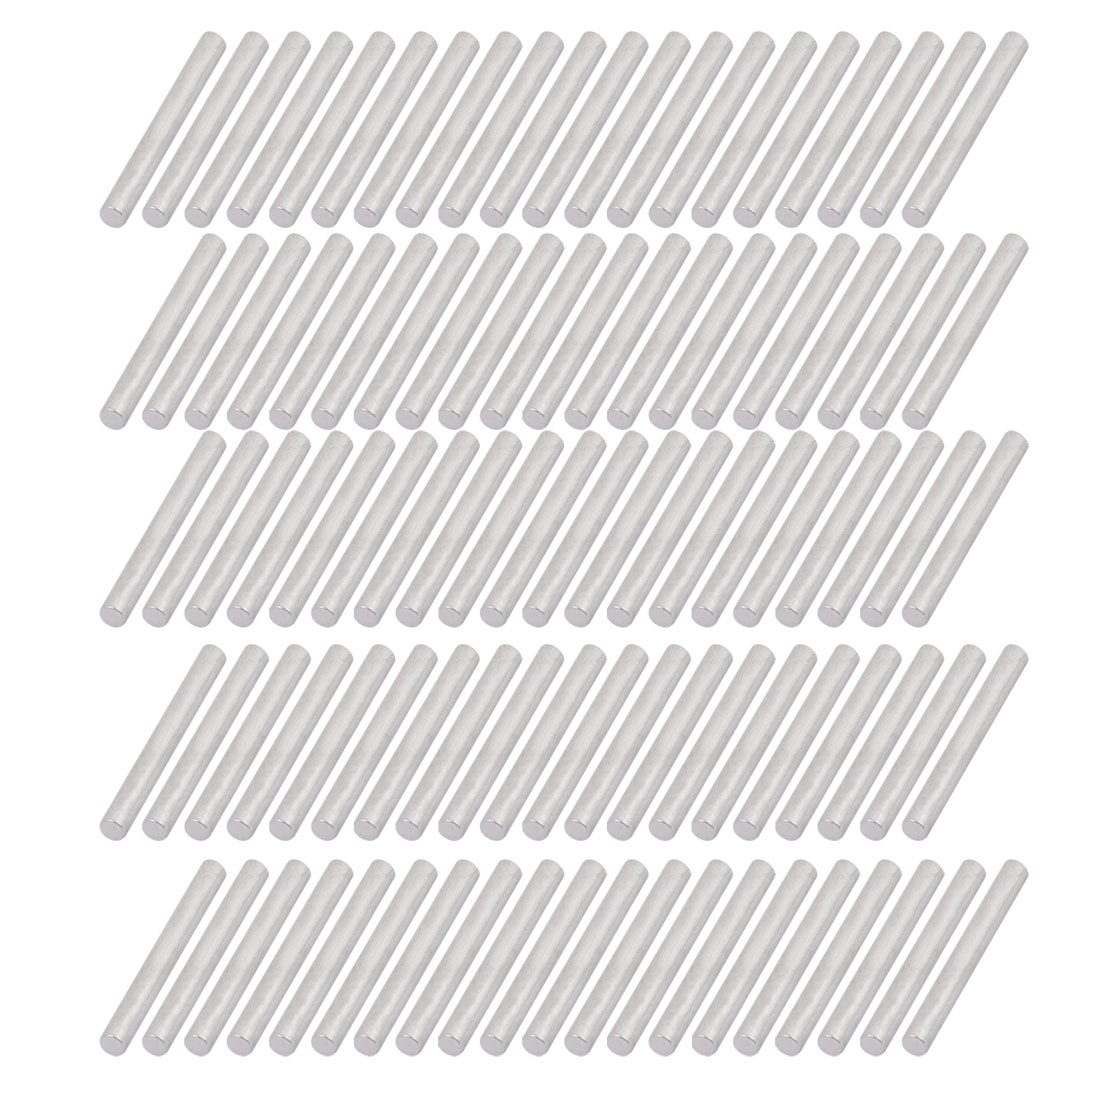 100Pcs Round Shaft Solid Steel Rods Axles Silver Tone 2mm x 18mm